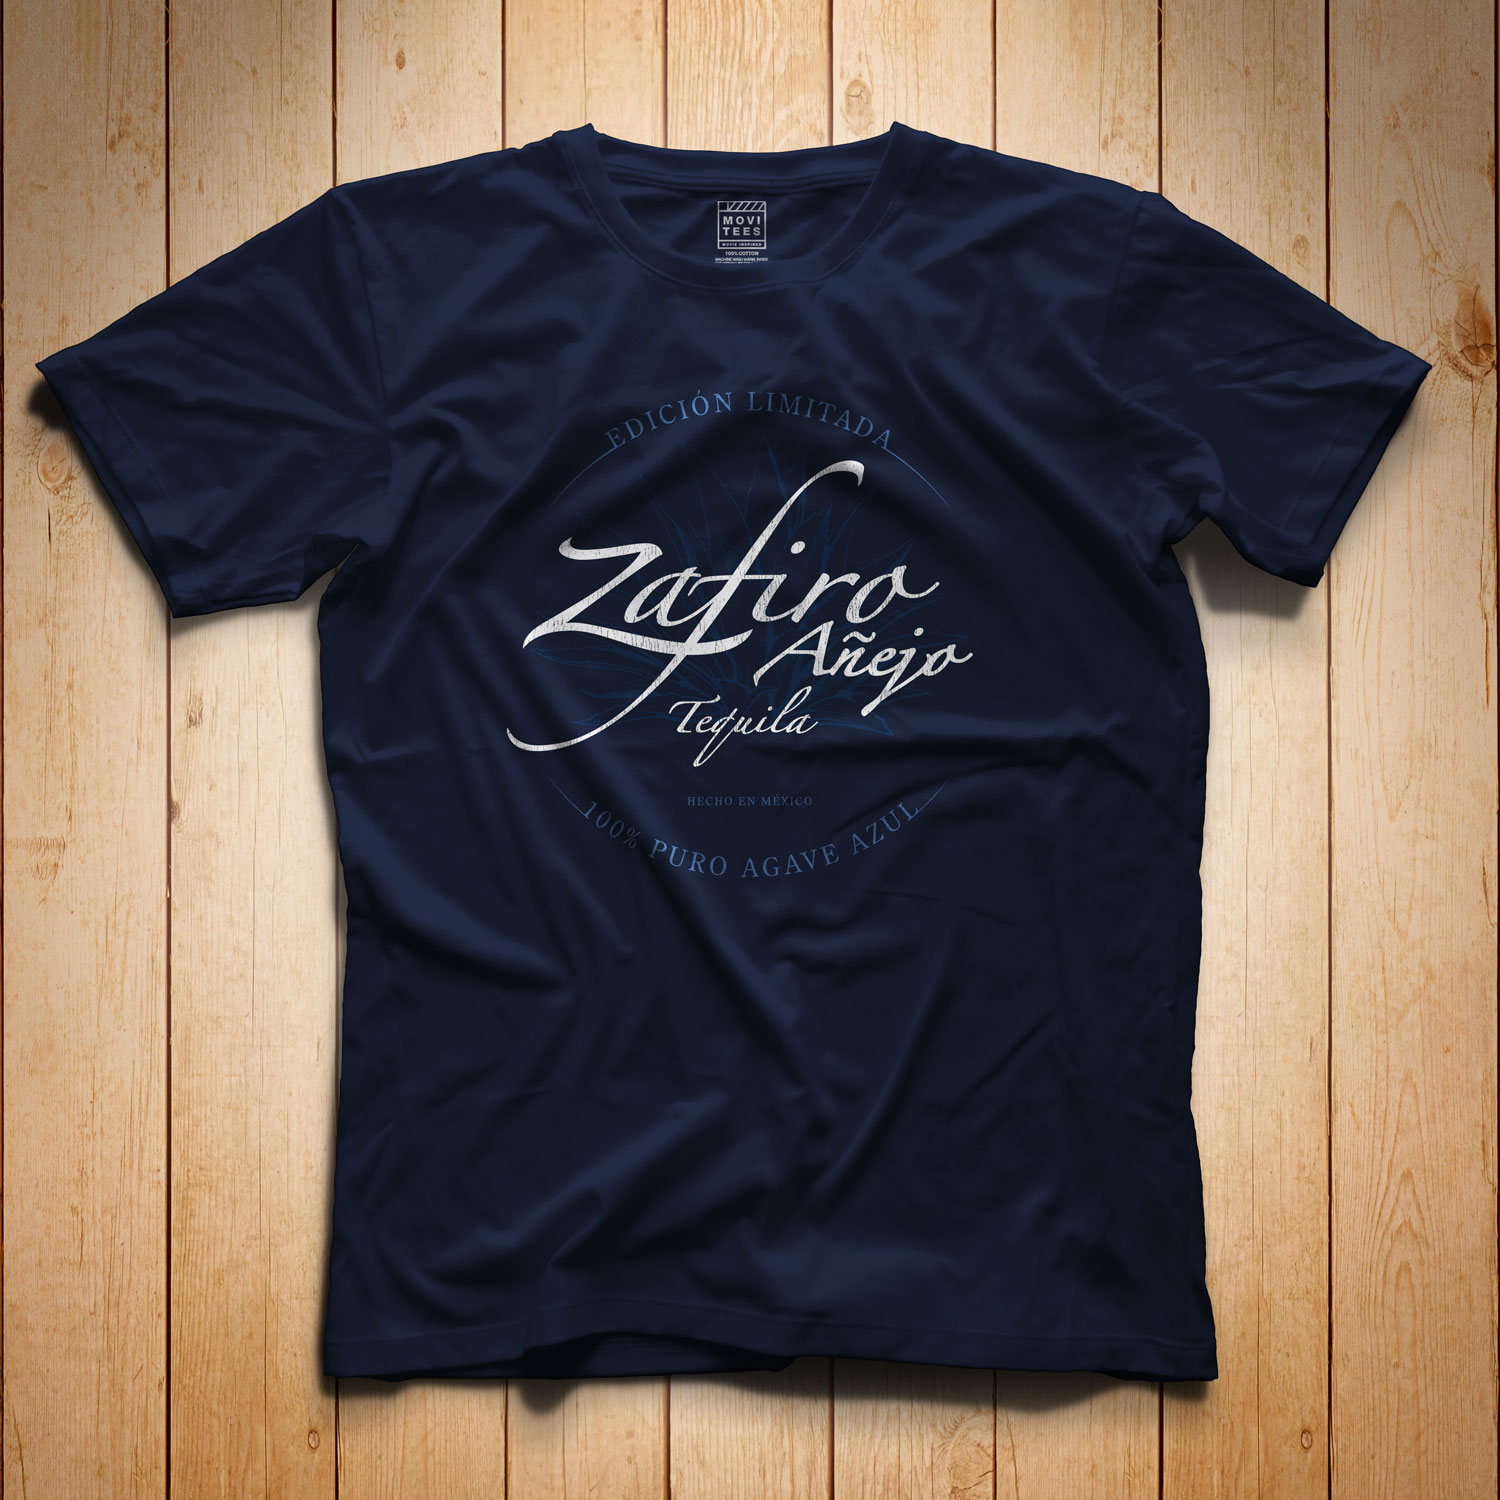 Zafiro-Anejo-Tequila-Breaking-Bad-Inspired-TShirt-by-MoviTees_N.jpg